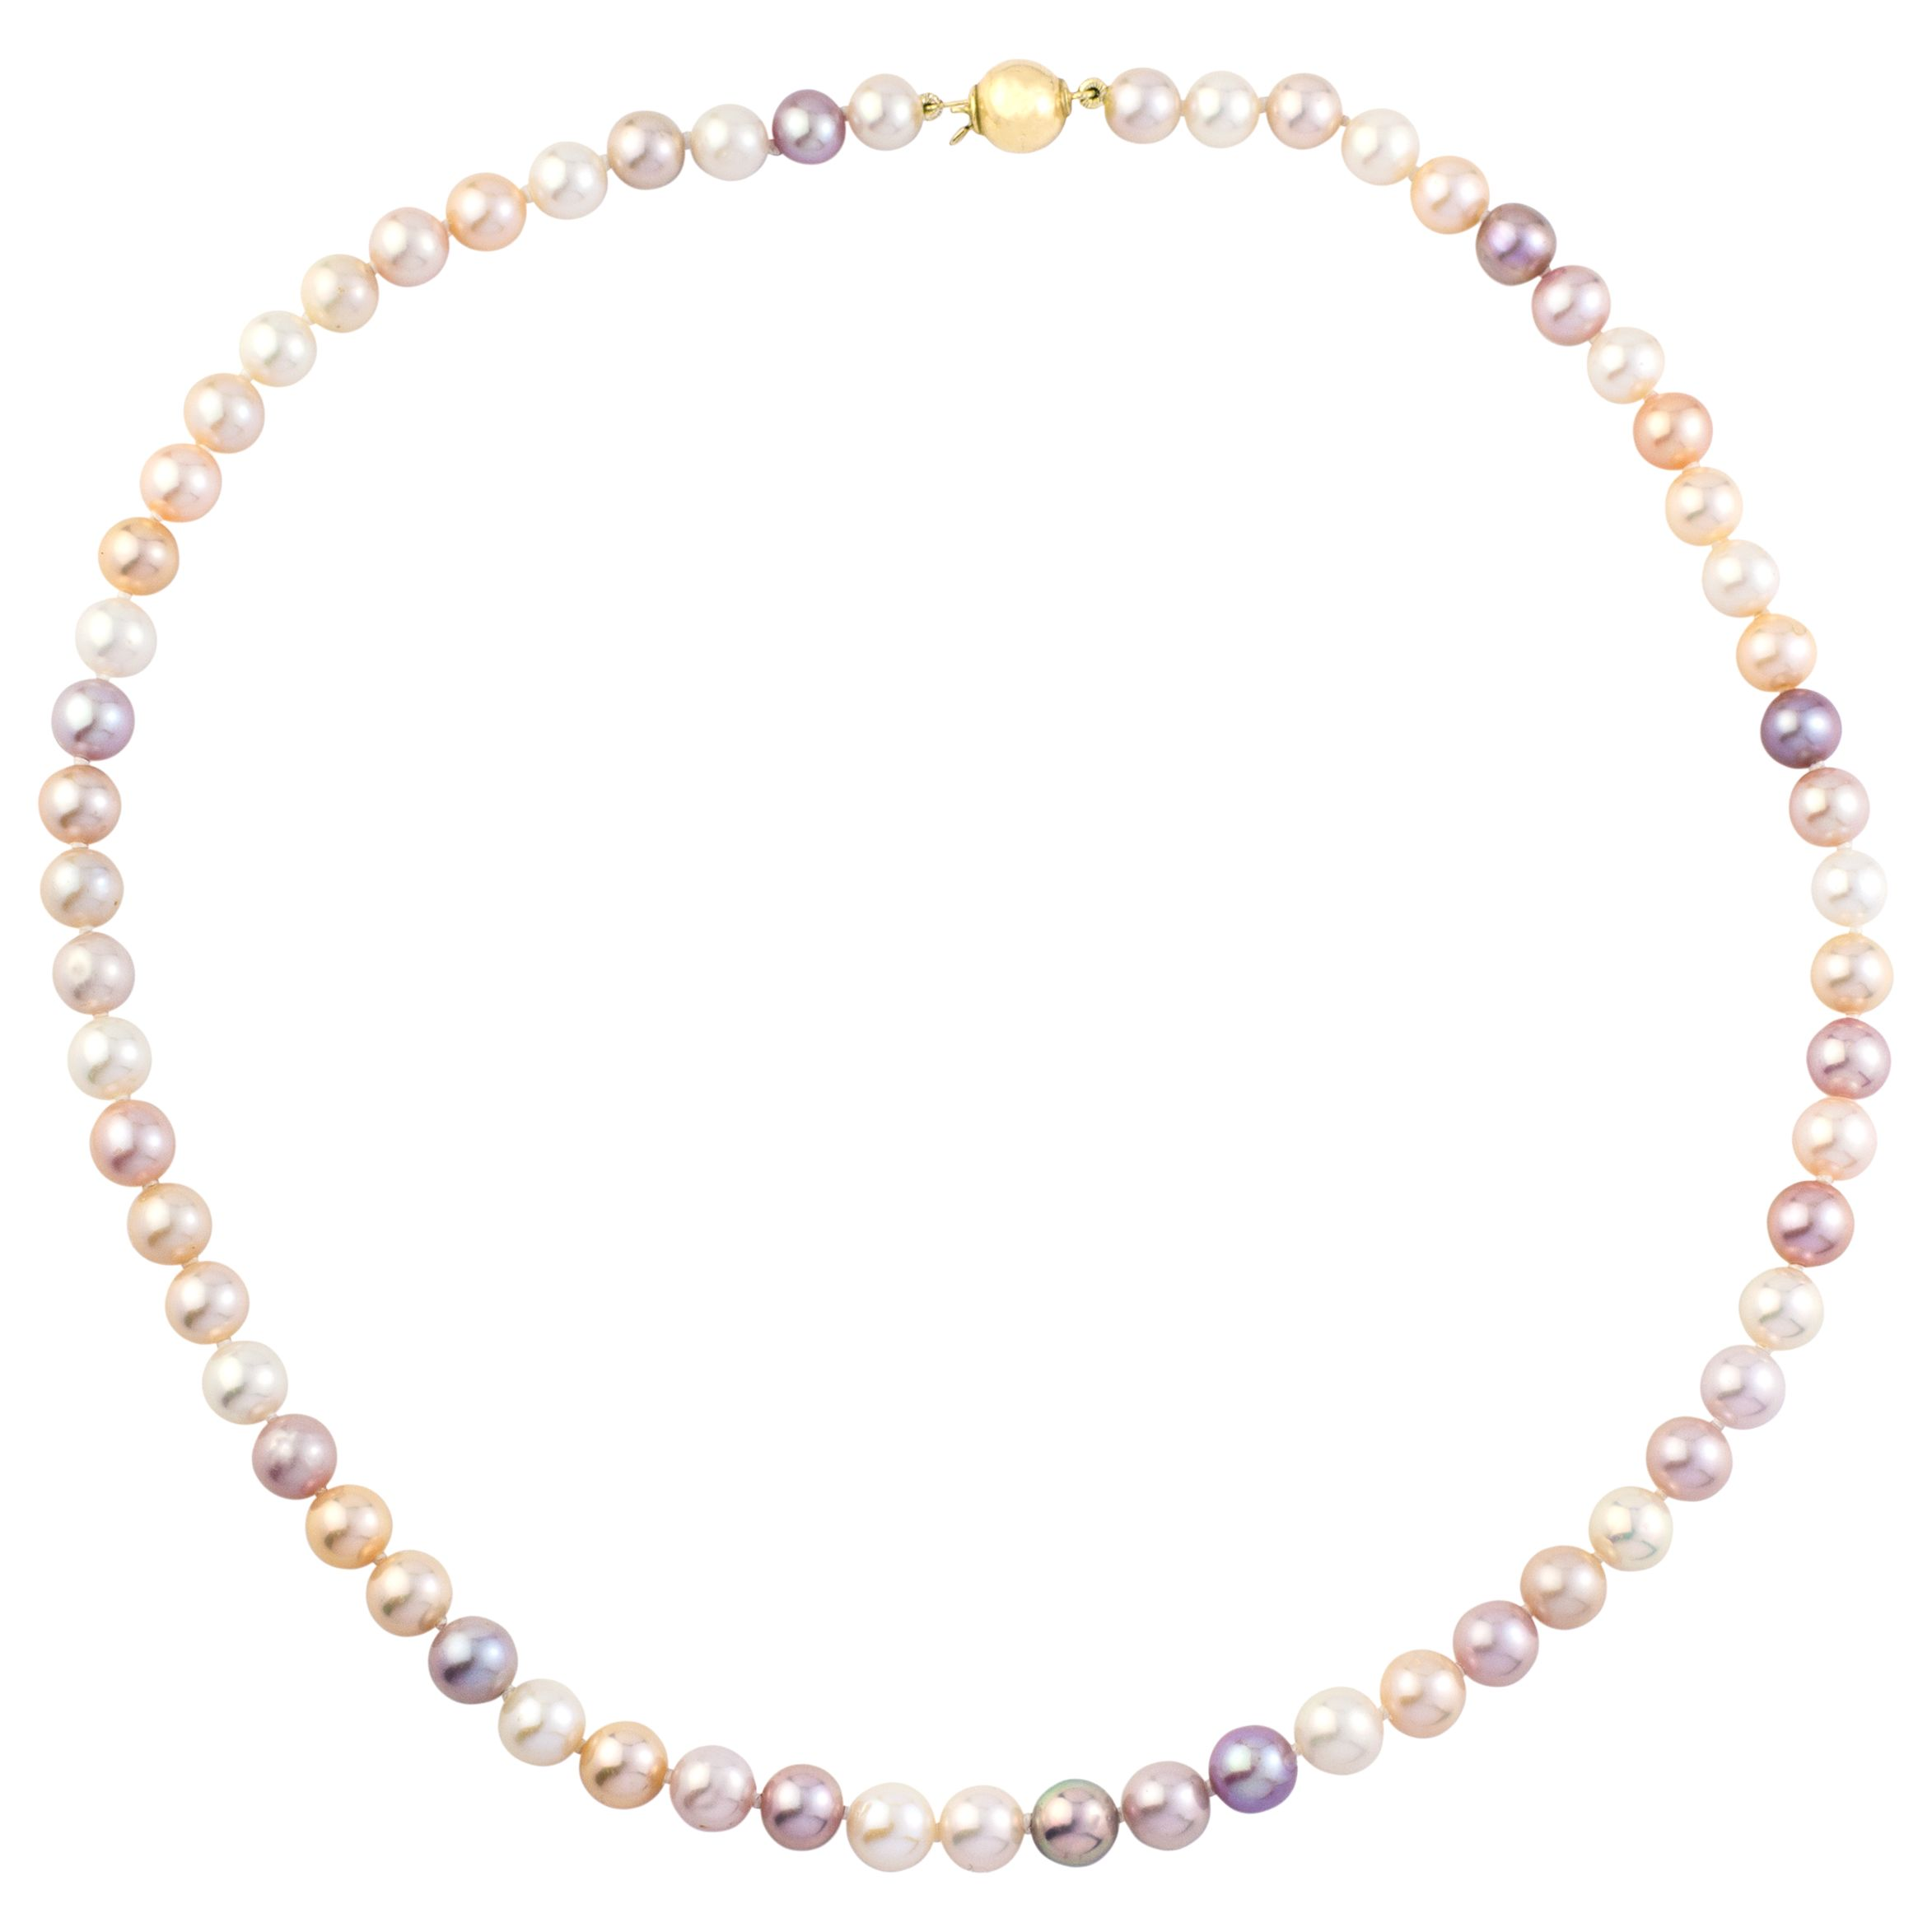 A B Davis A B Davis 9ct Gold Pearl Necklace, Multi